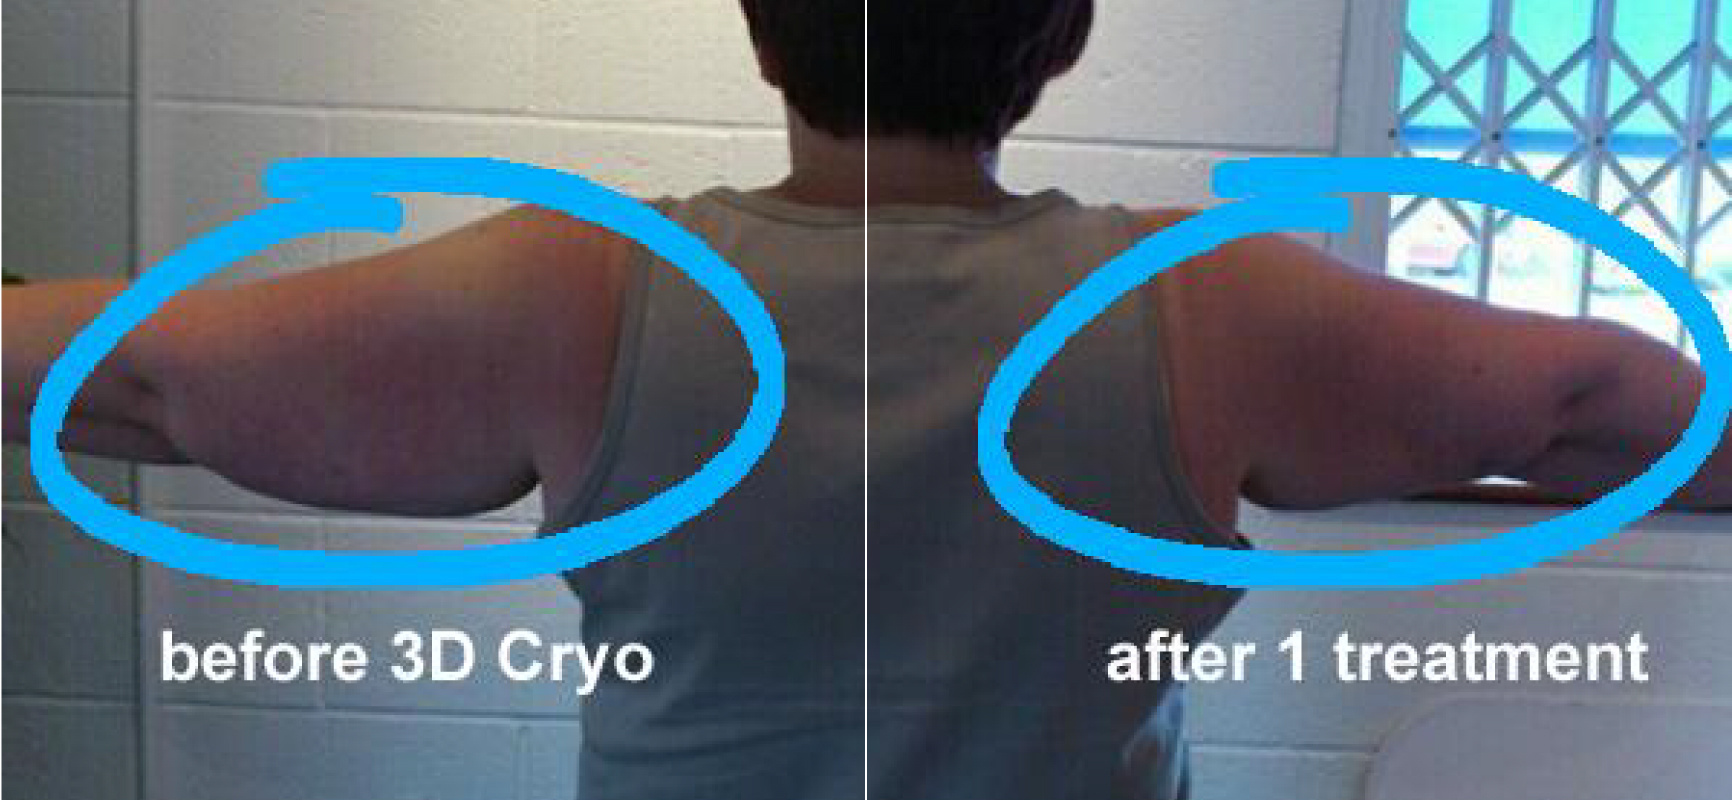 Results after 1 session of Cryolipolysis